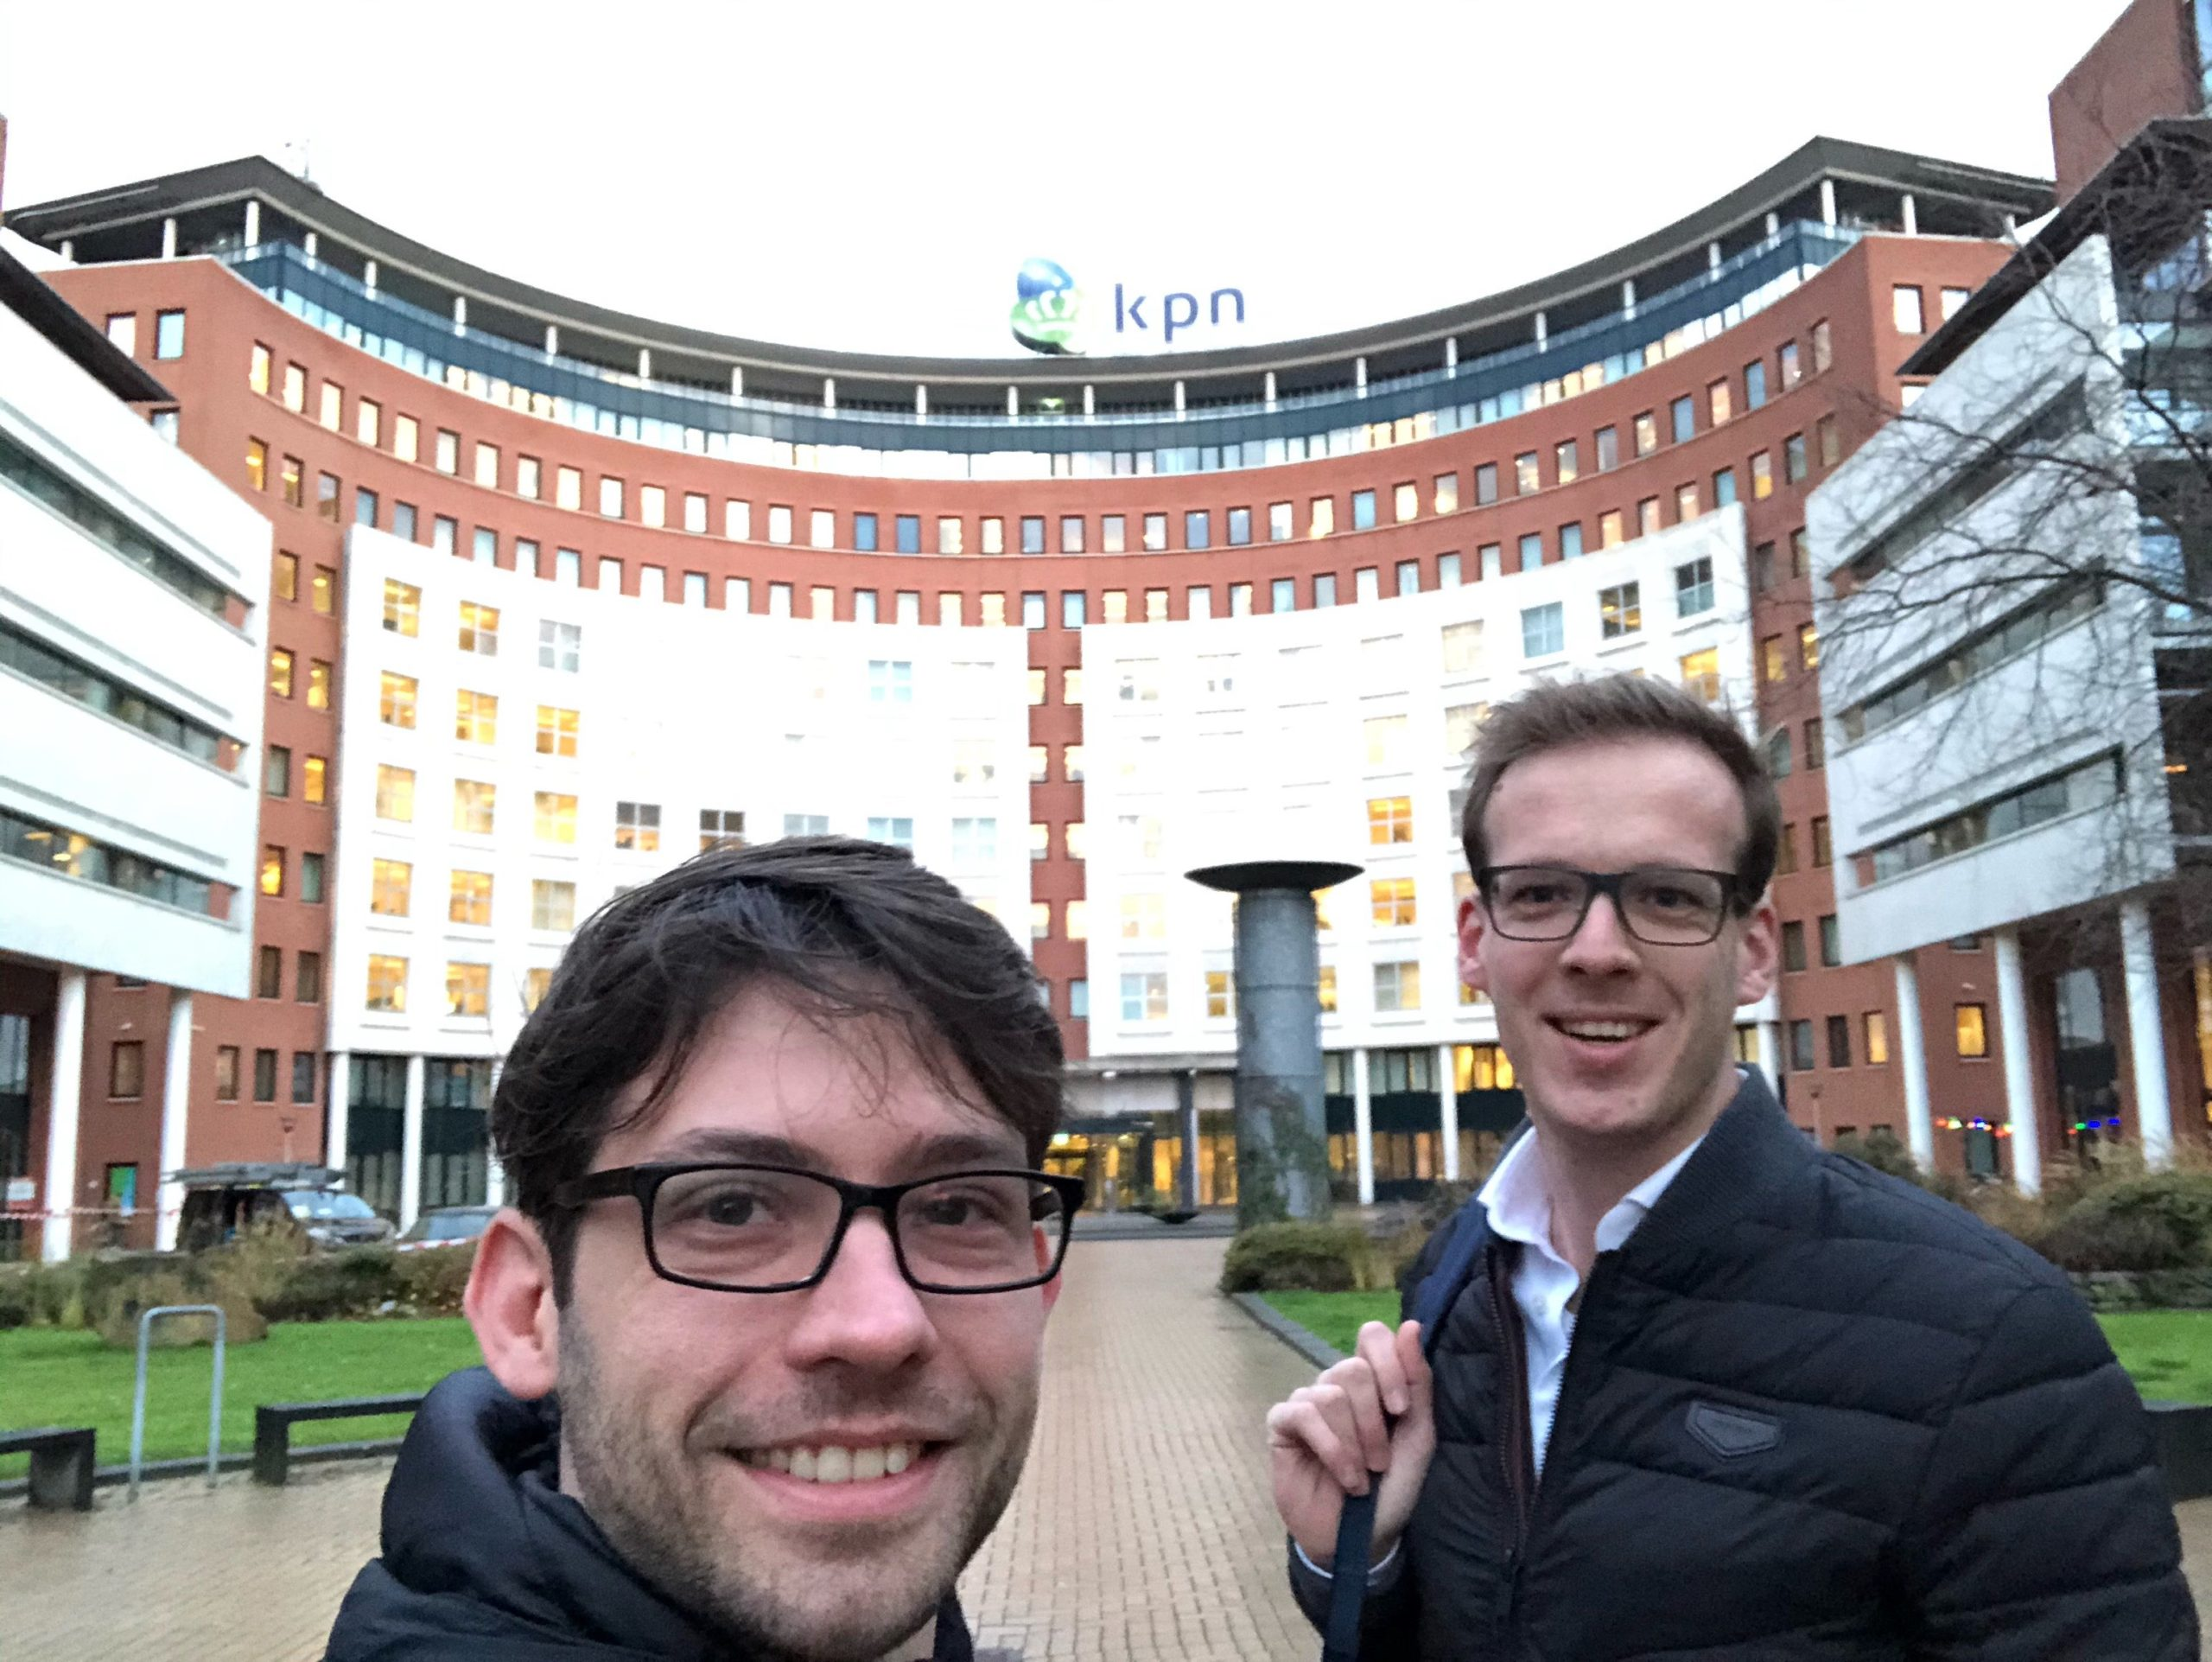 Trainers Nico and Ruud are ready to provide the mobile strategy training to KPN